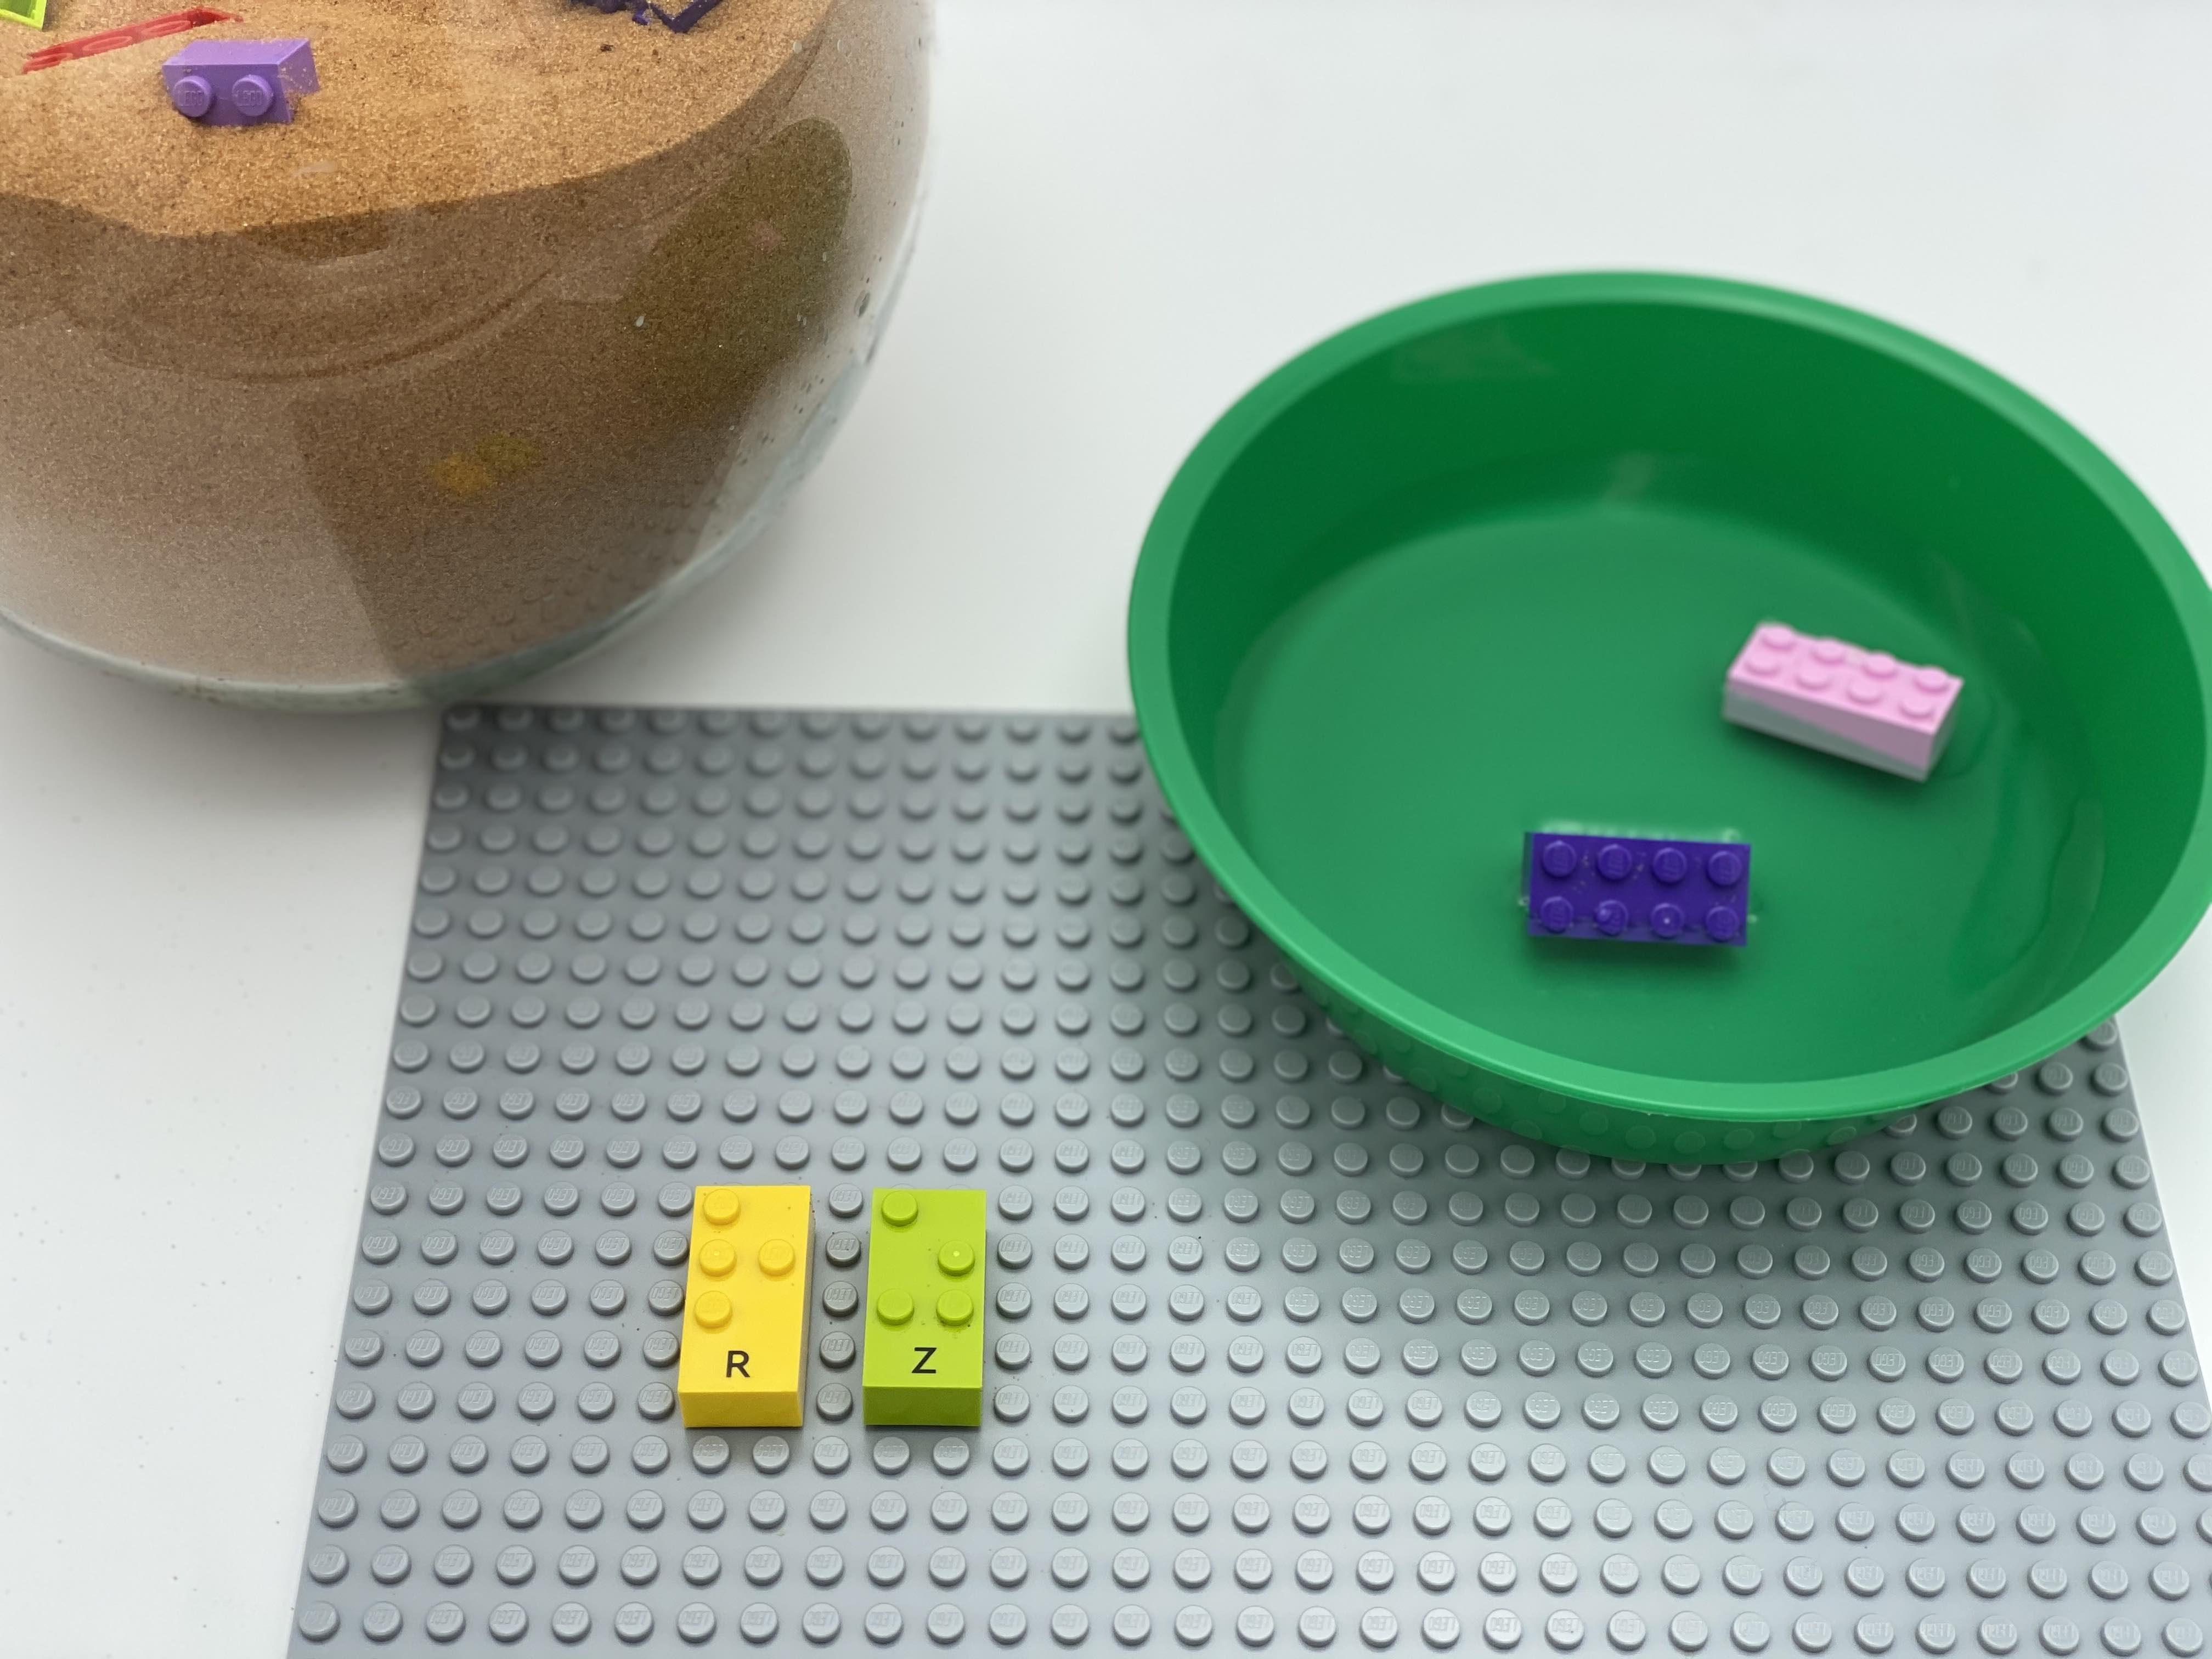 2 classic brick turtles are in a bowl filled with water, 2 lizard bricks (letter R and Z) are attached on the plate.